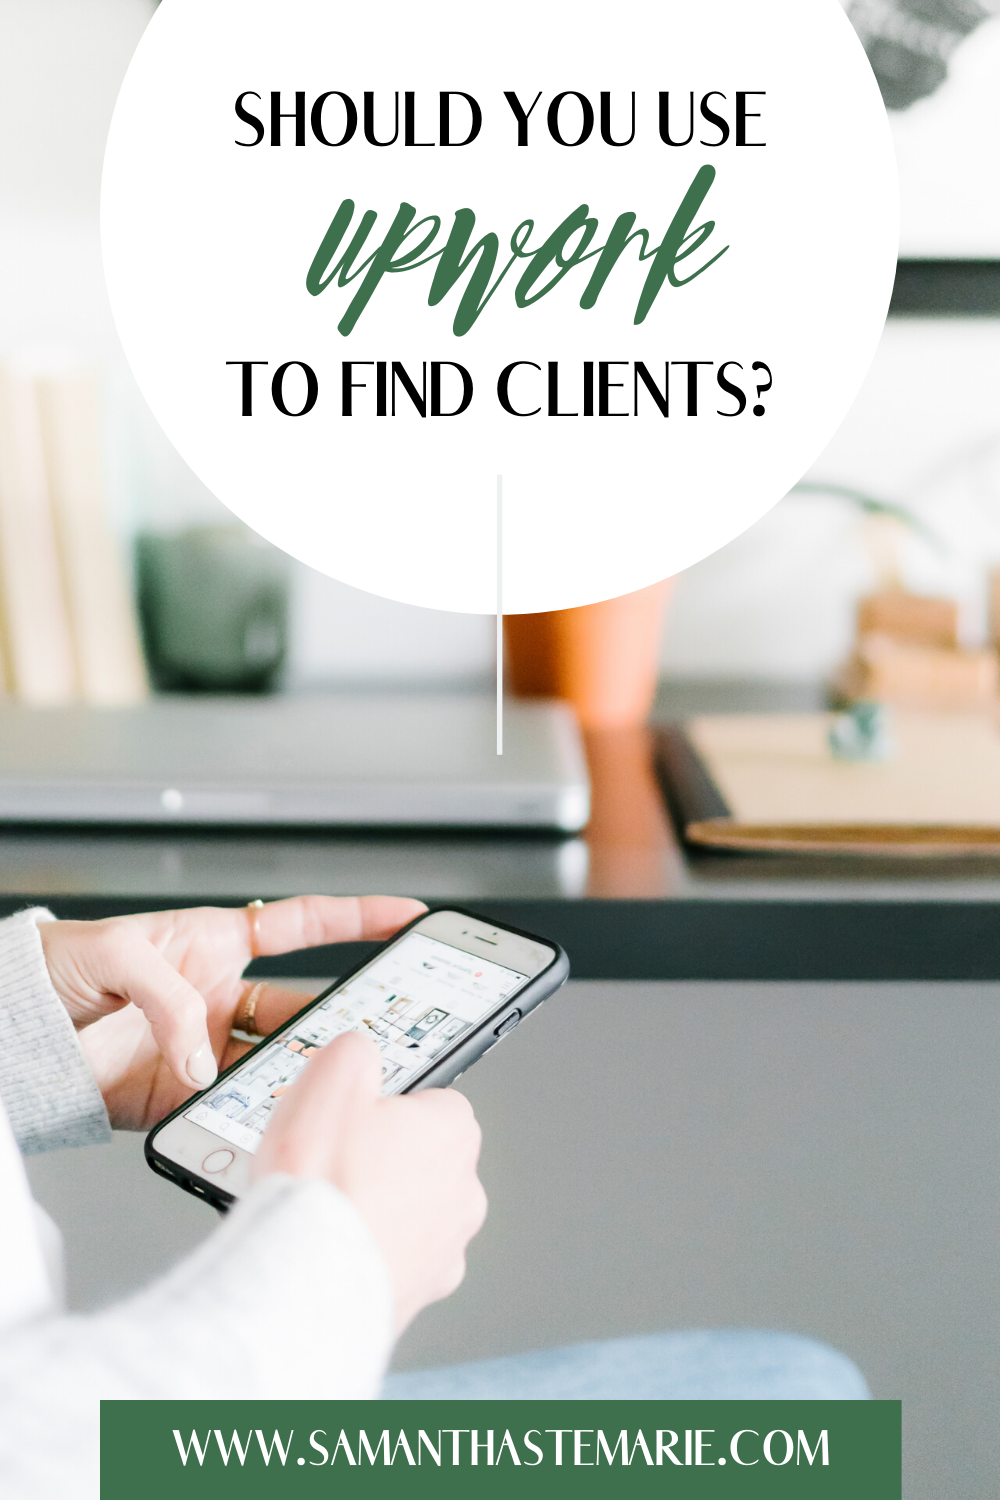 Is upwork with it and will is actually help you find clients?